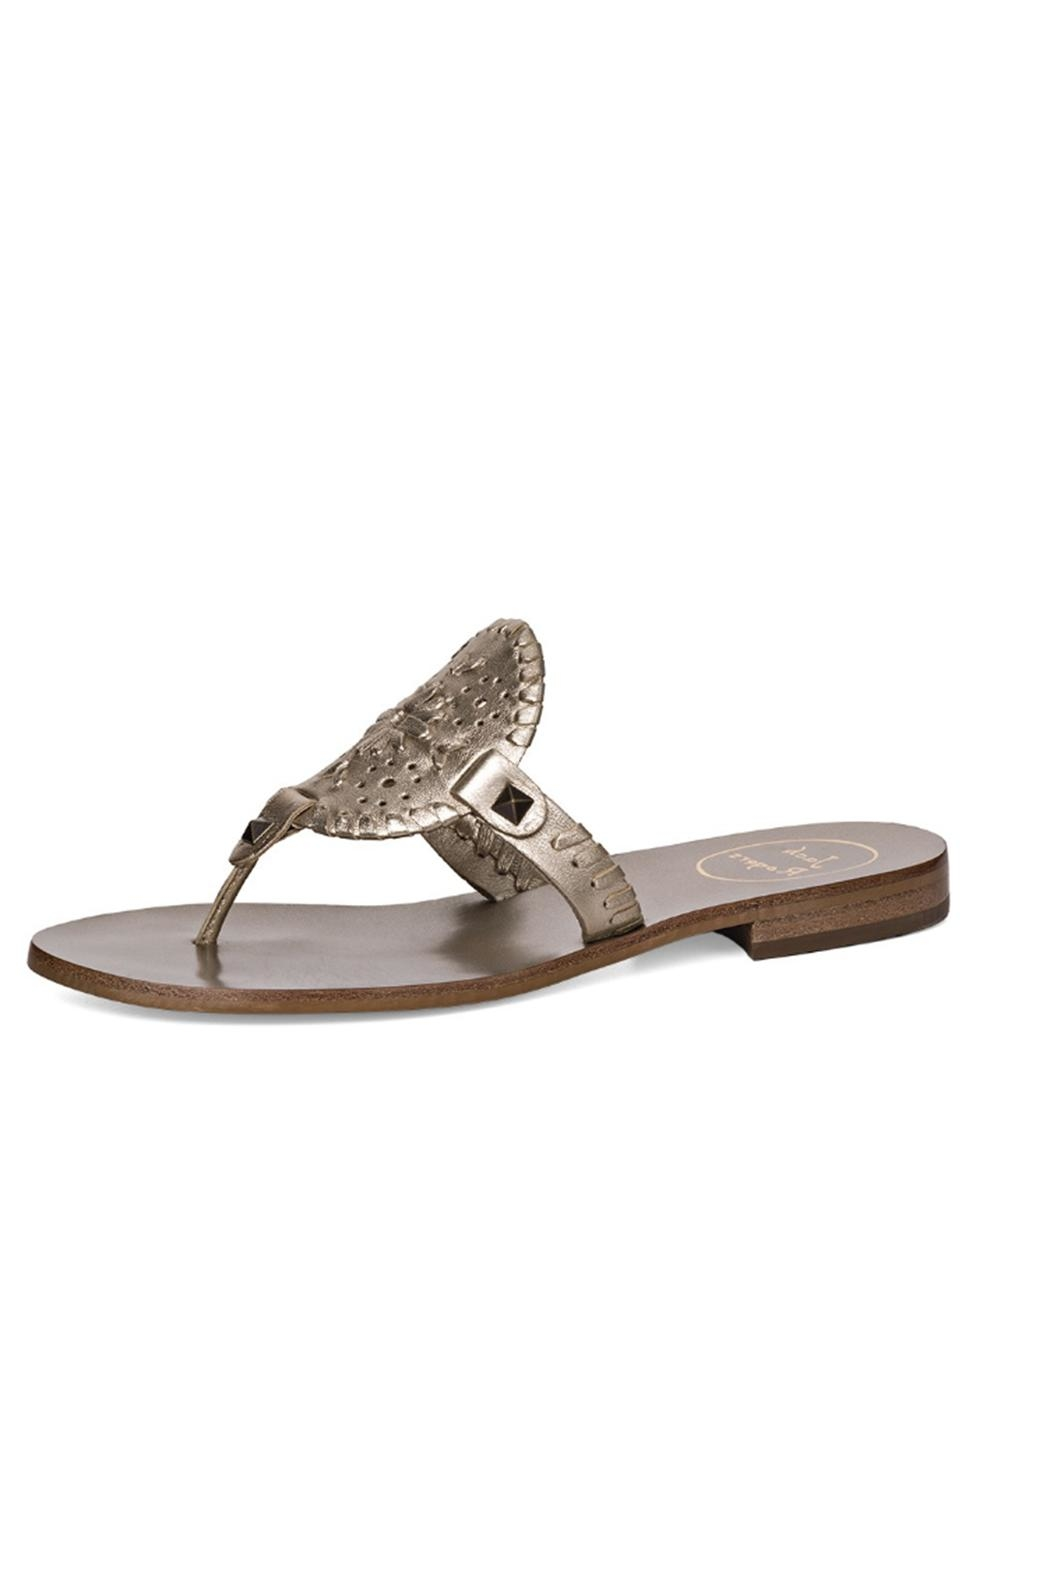 841cc3d0cf4 Jack Rogers Georgica Sandal from Connecticut by Cortland Park ...